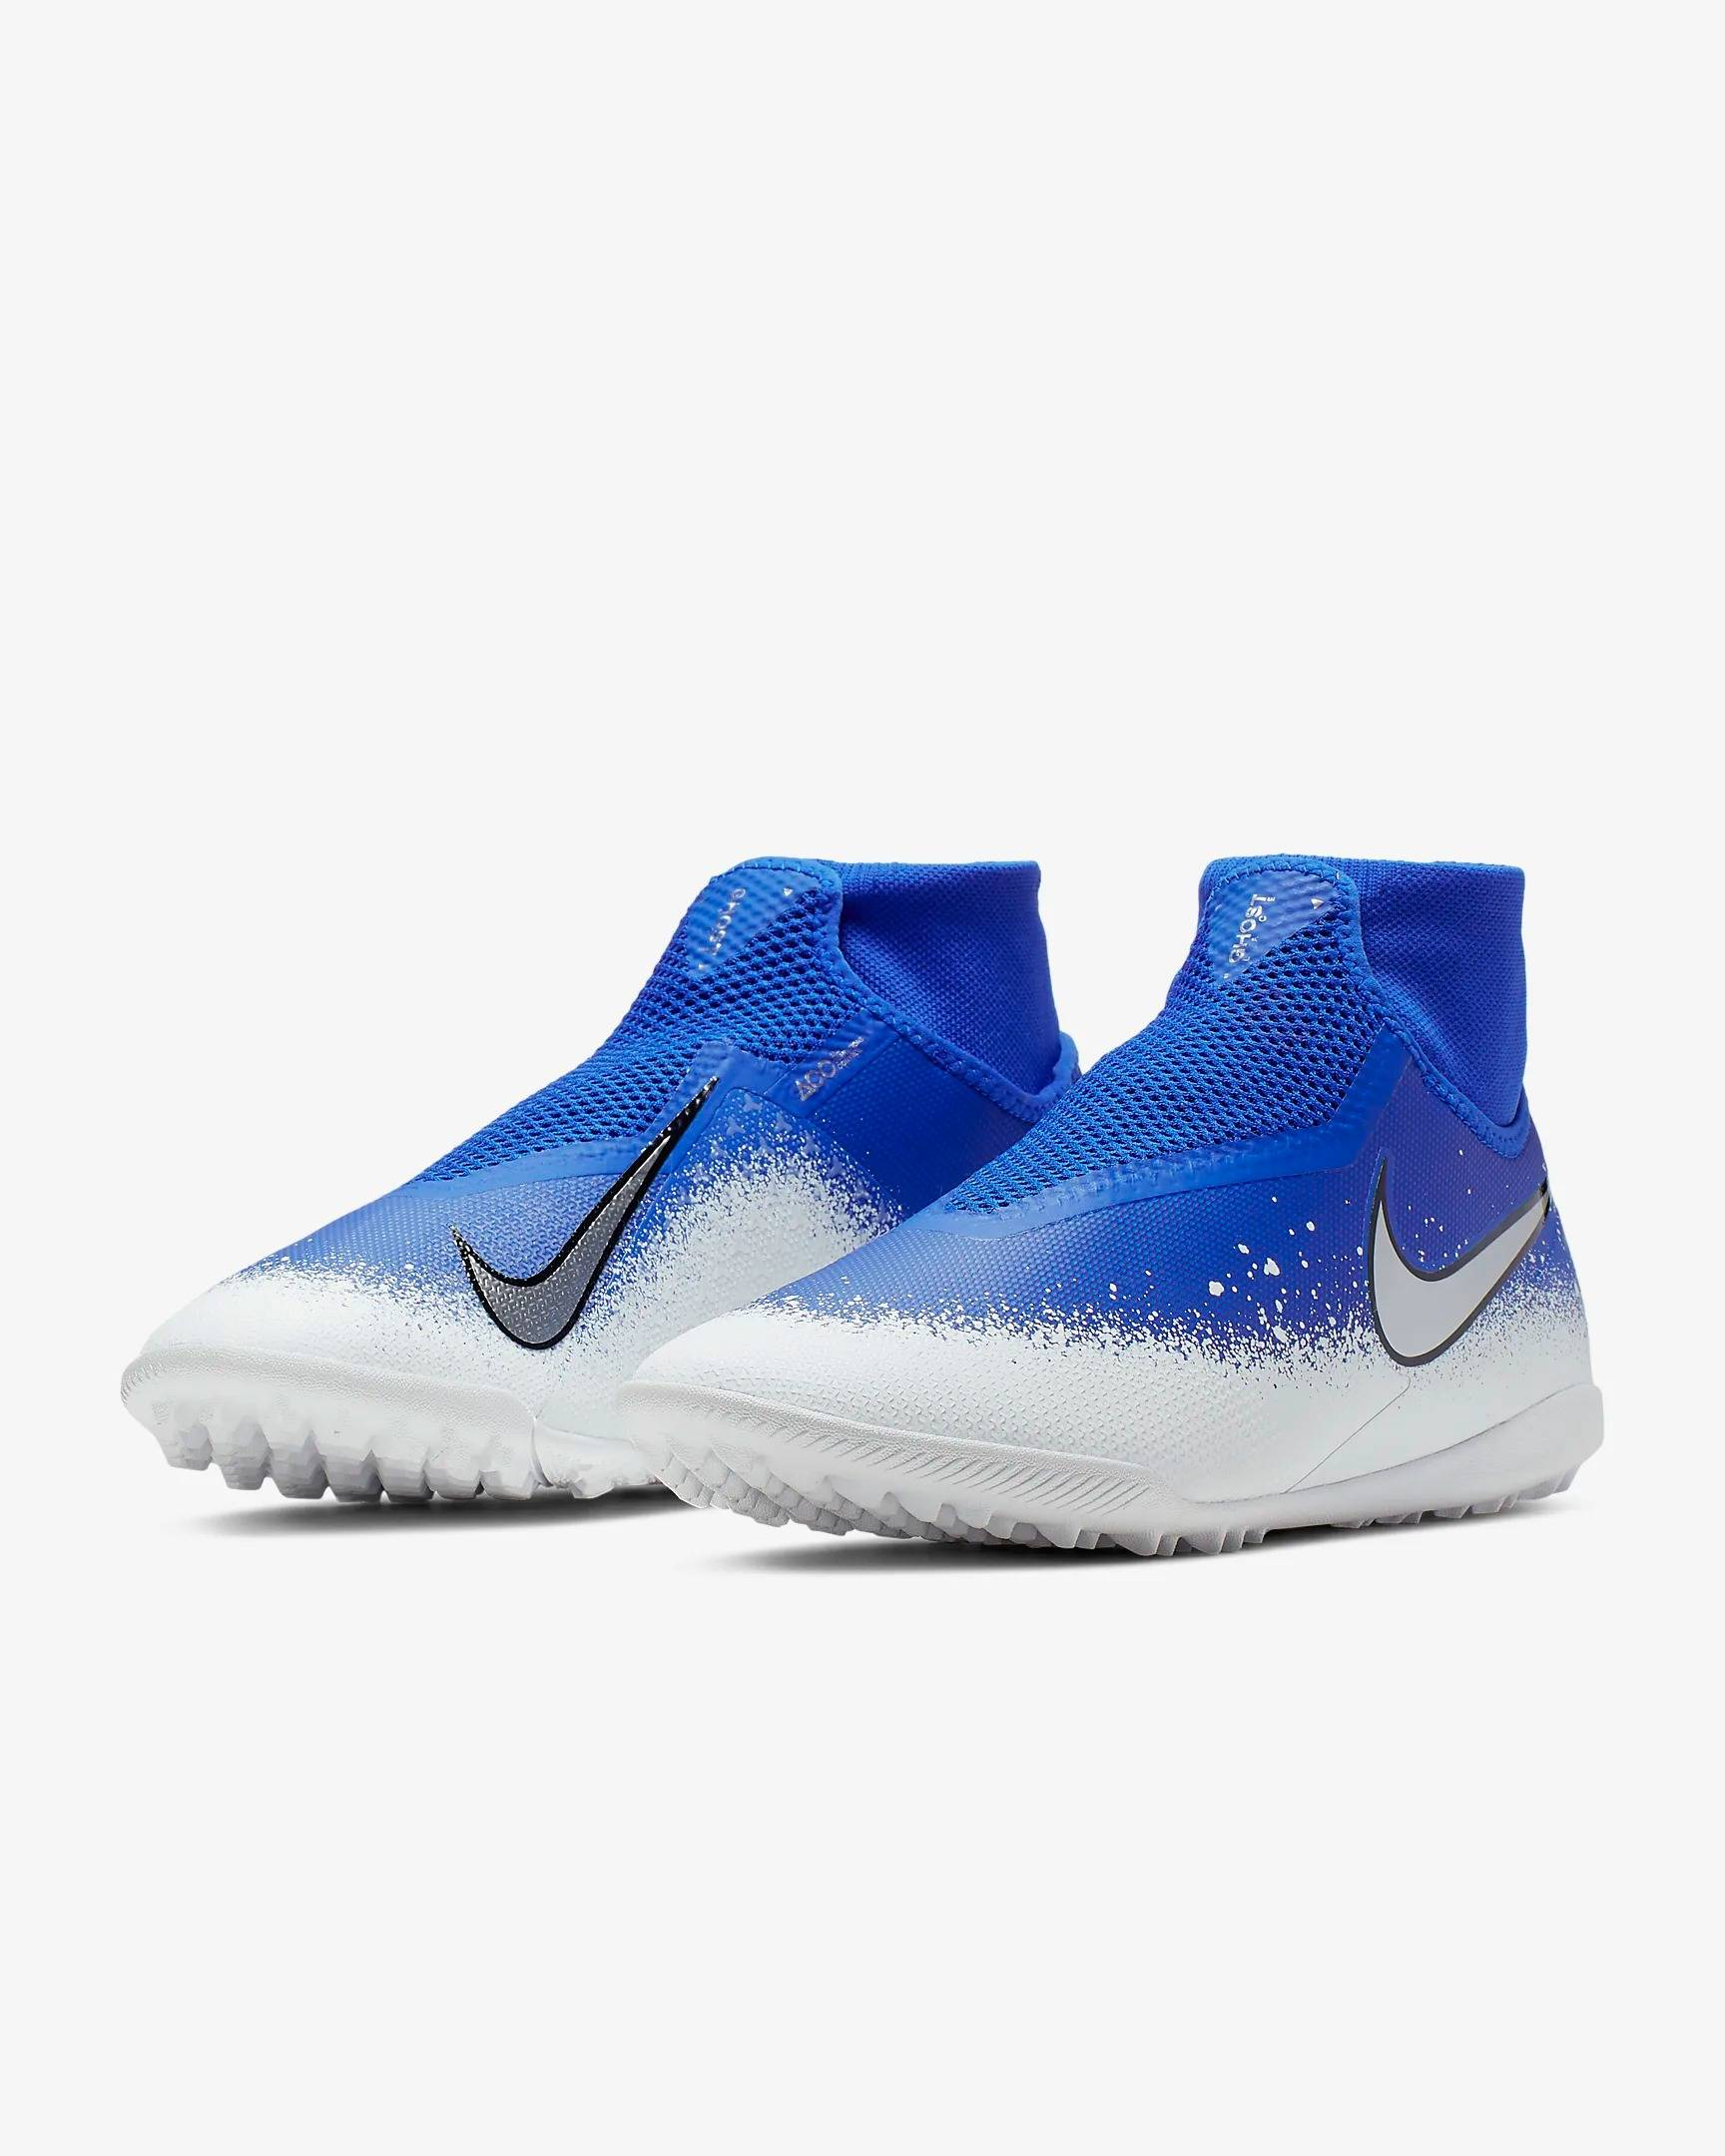 Футбольные шиповки Nike React Phantom Vsn Pro DF TF AO3277-410 SR (фото 4)